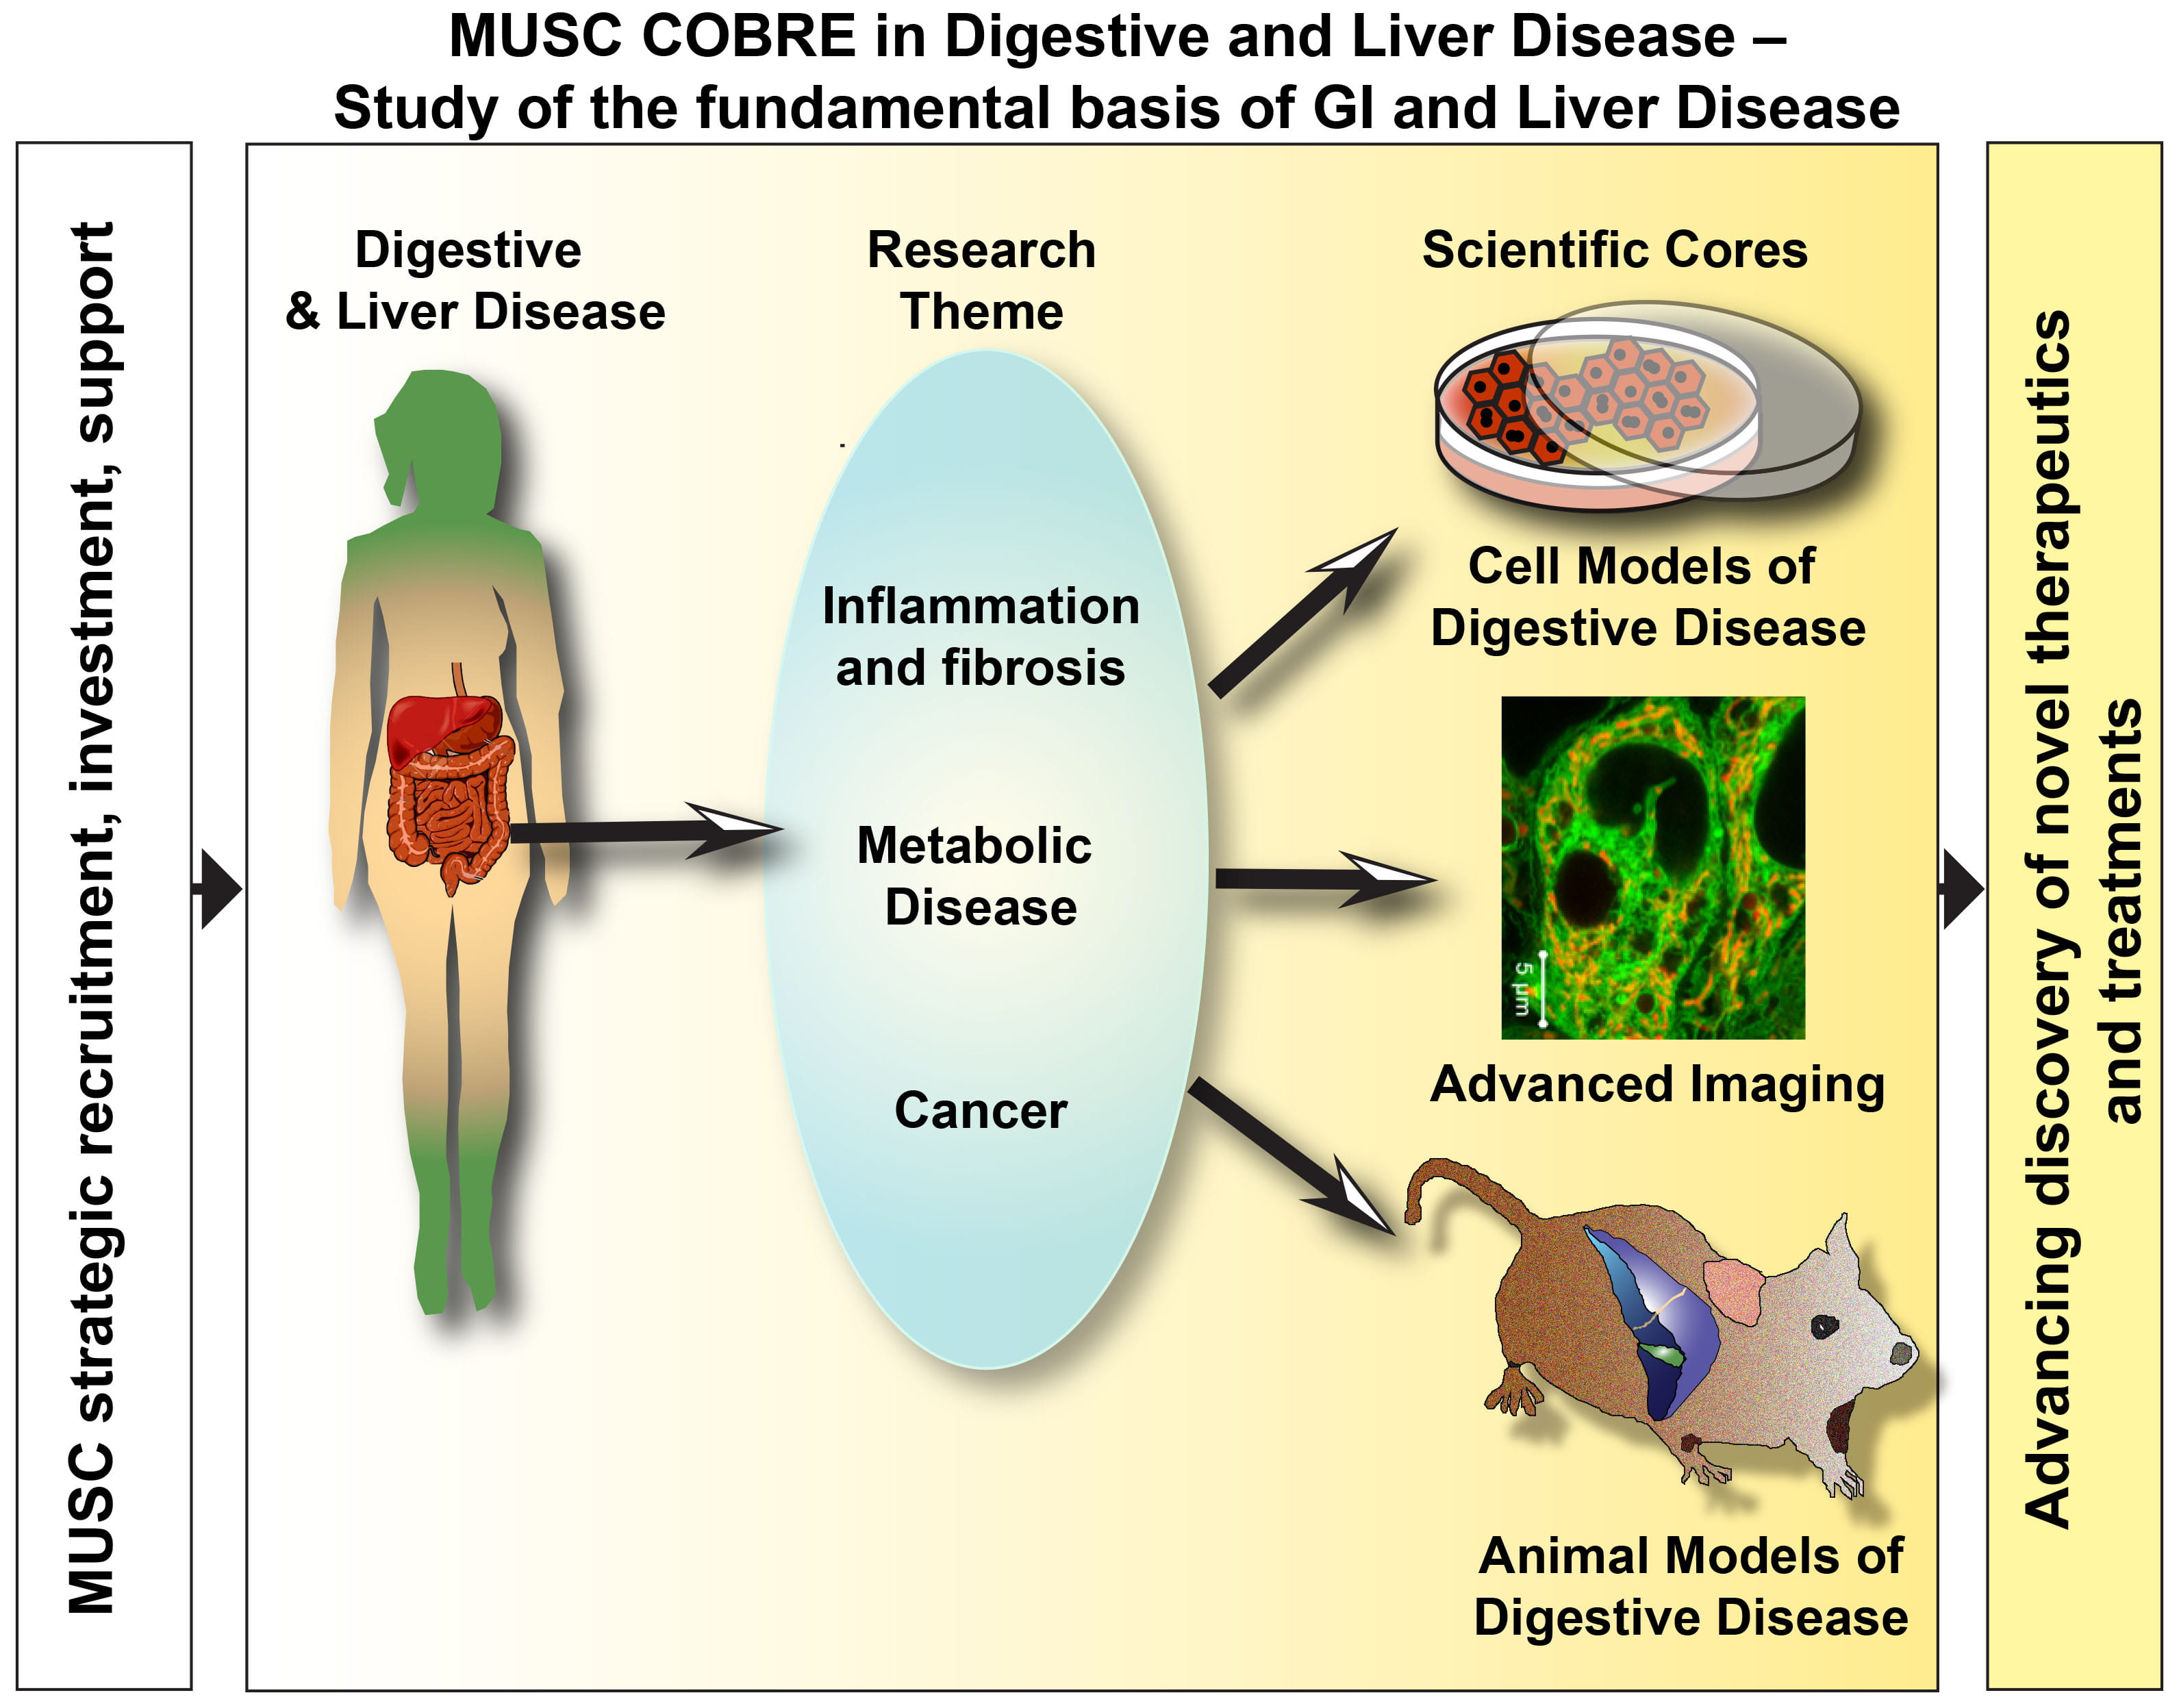 Graphical abstract of the MUSC Center for biomedical resarch excellence in digestive and liver disease